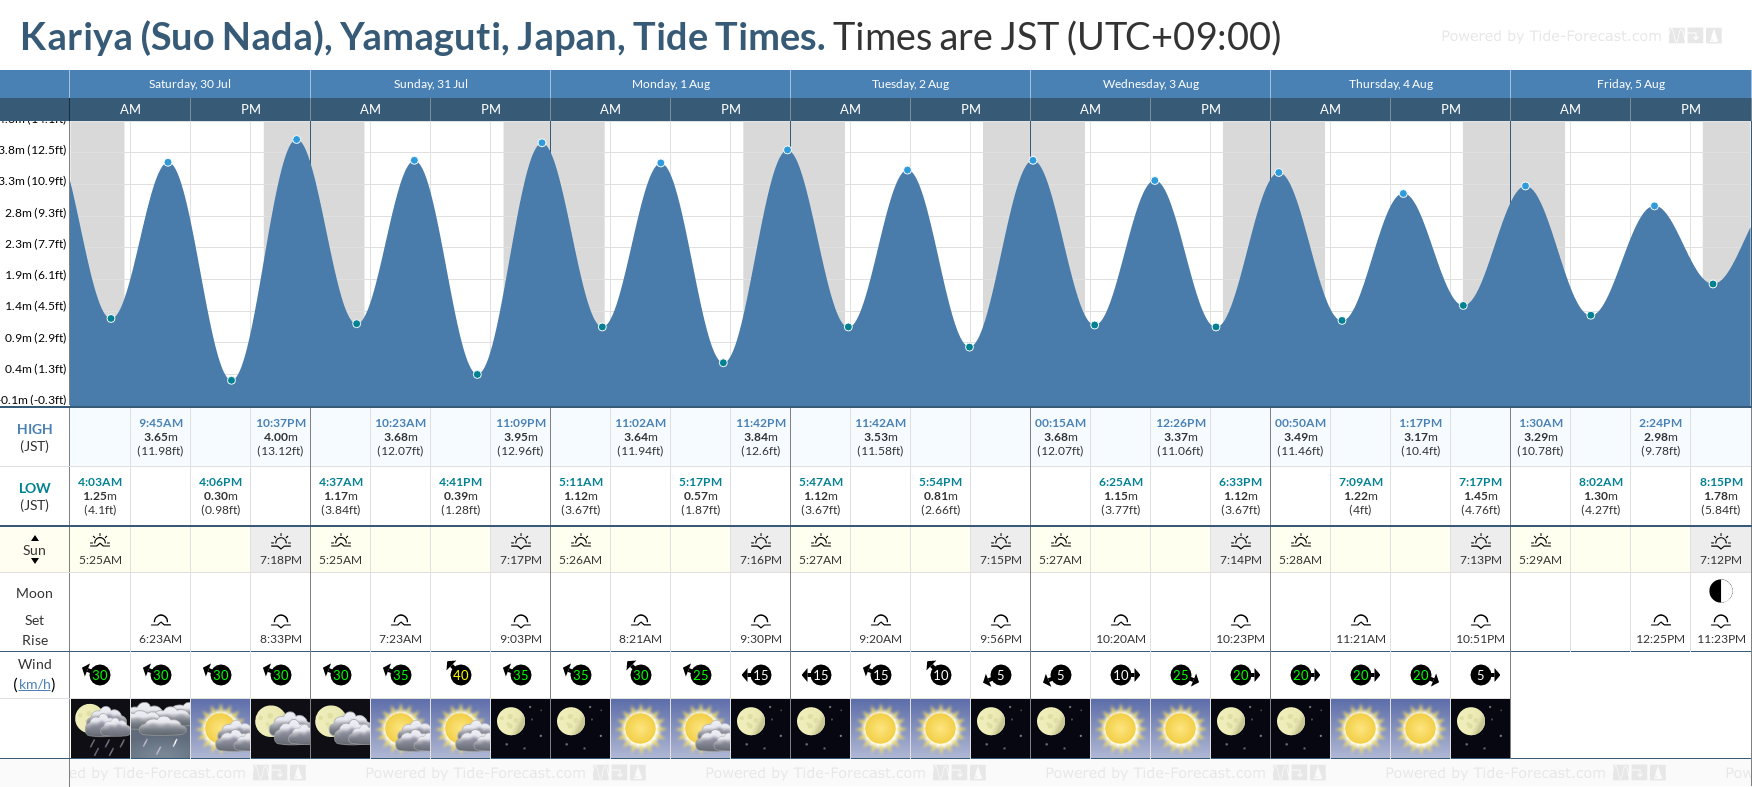 Kariya (Suo Nada), Yamaguti, Japan Tide Chart including high and low tide tide times for the next 7 days